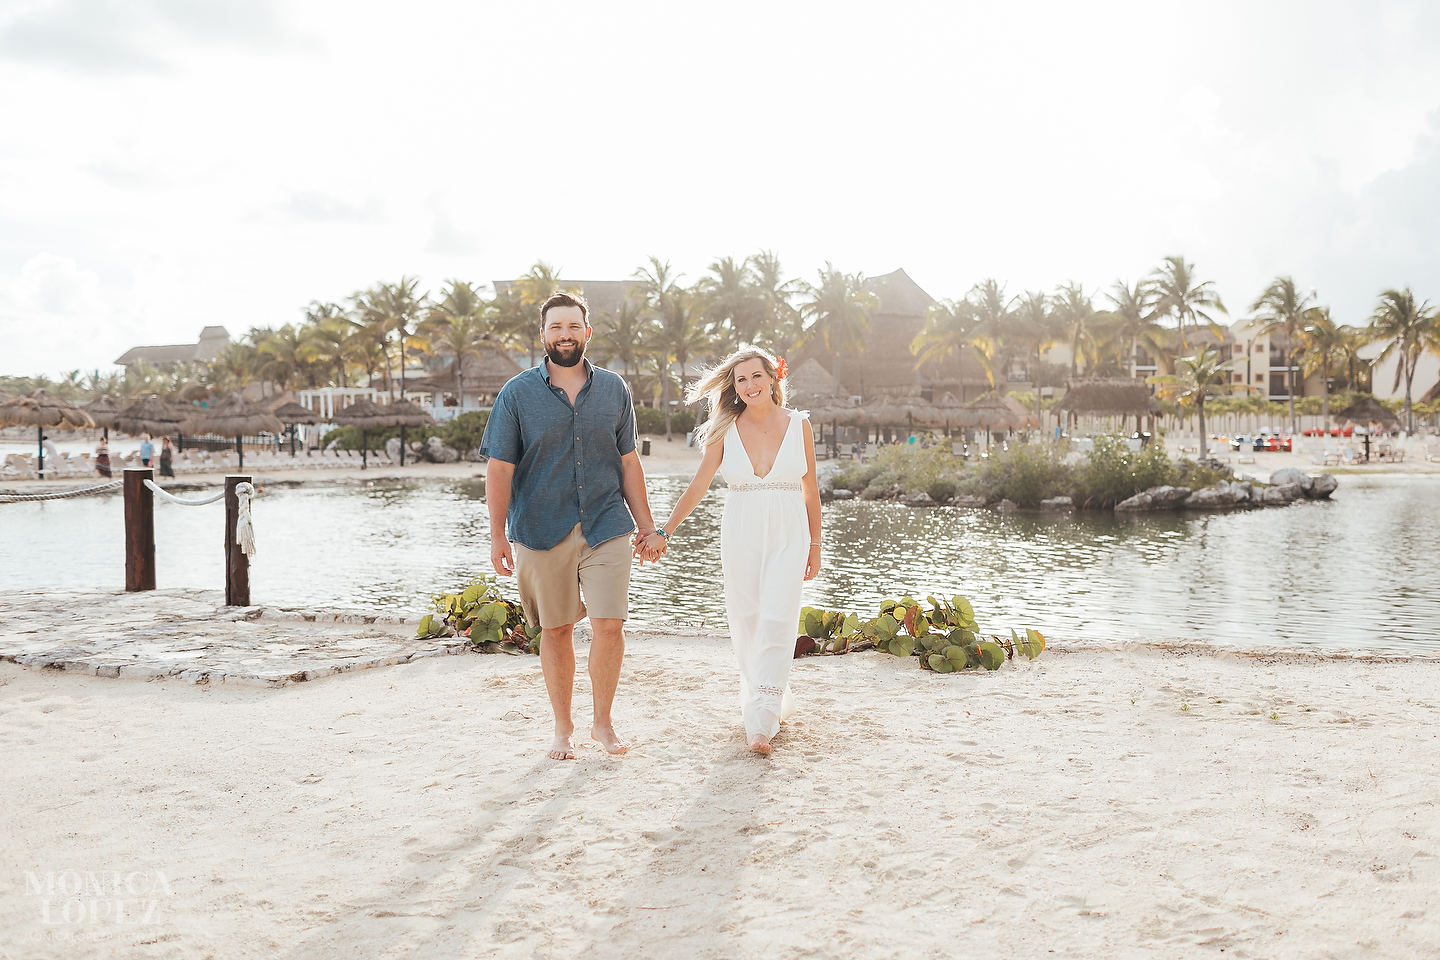 Best Friends Getaway in Puerto Aventuras by Monica Lopez Photography